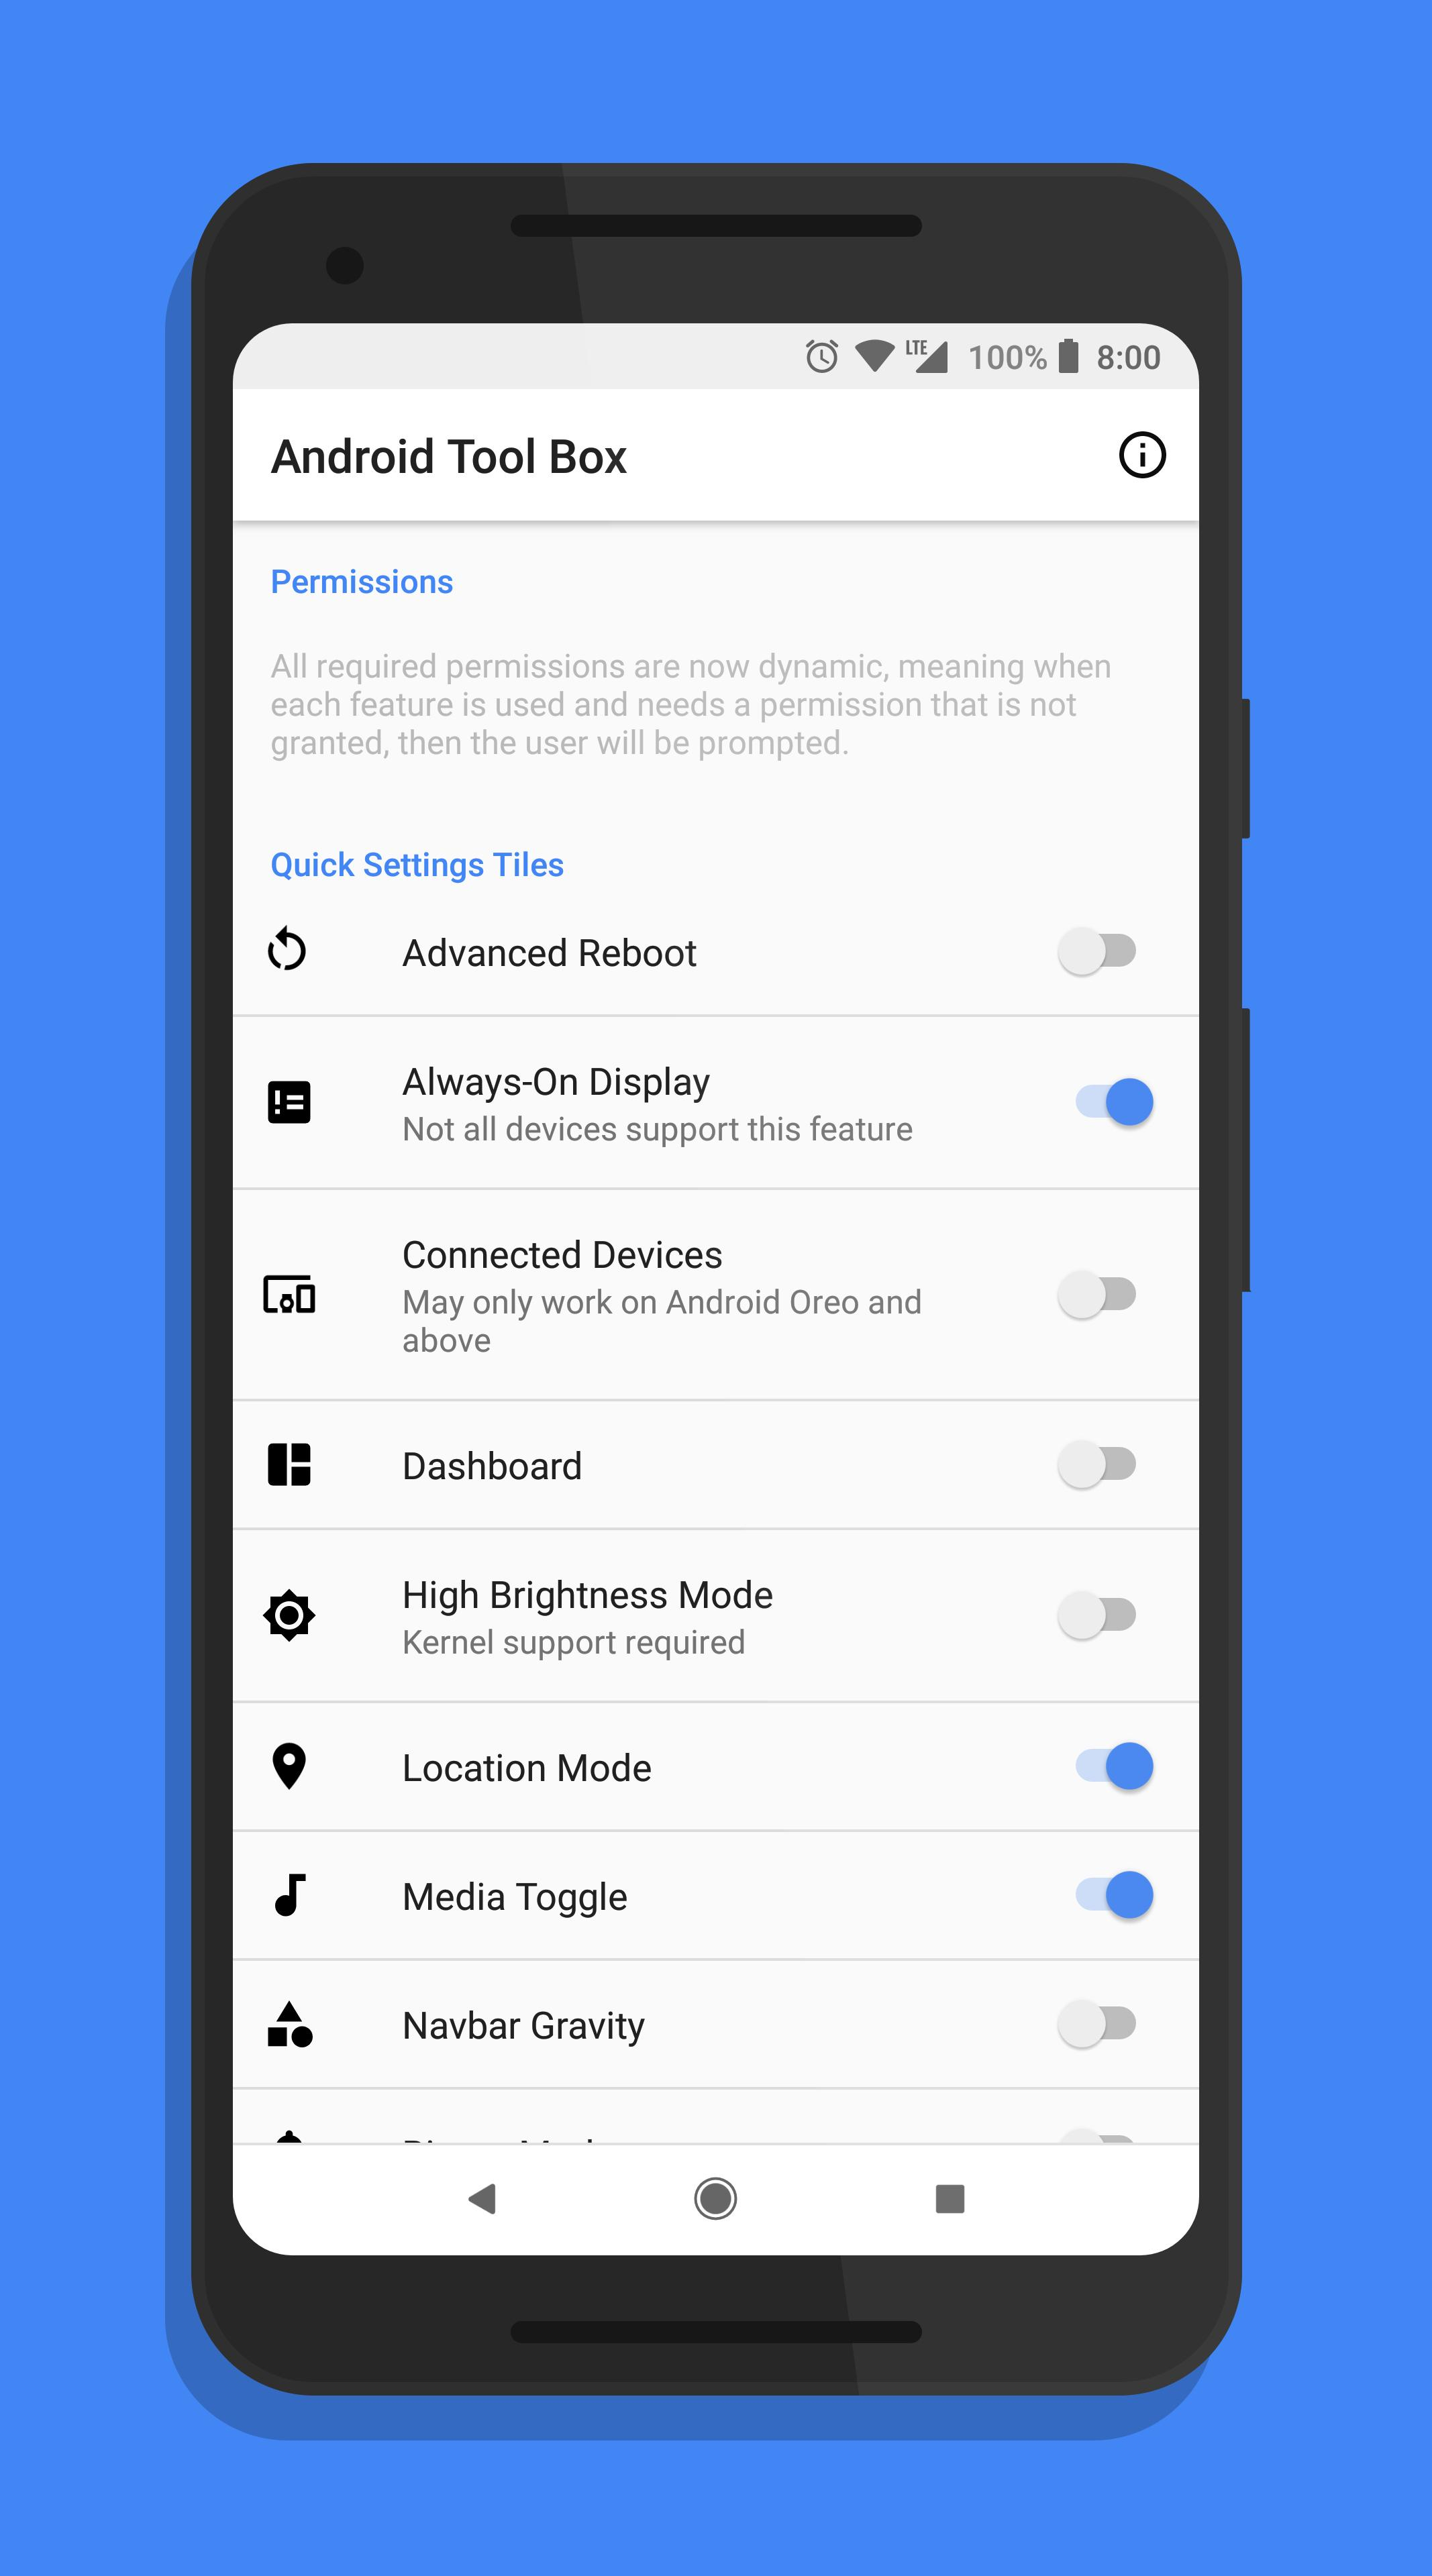 Android Tool Box For Android Apk Download